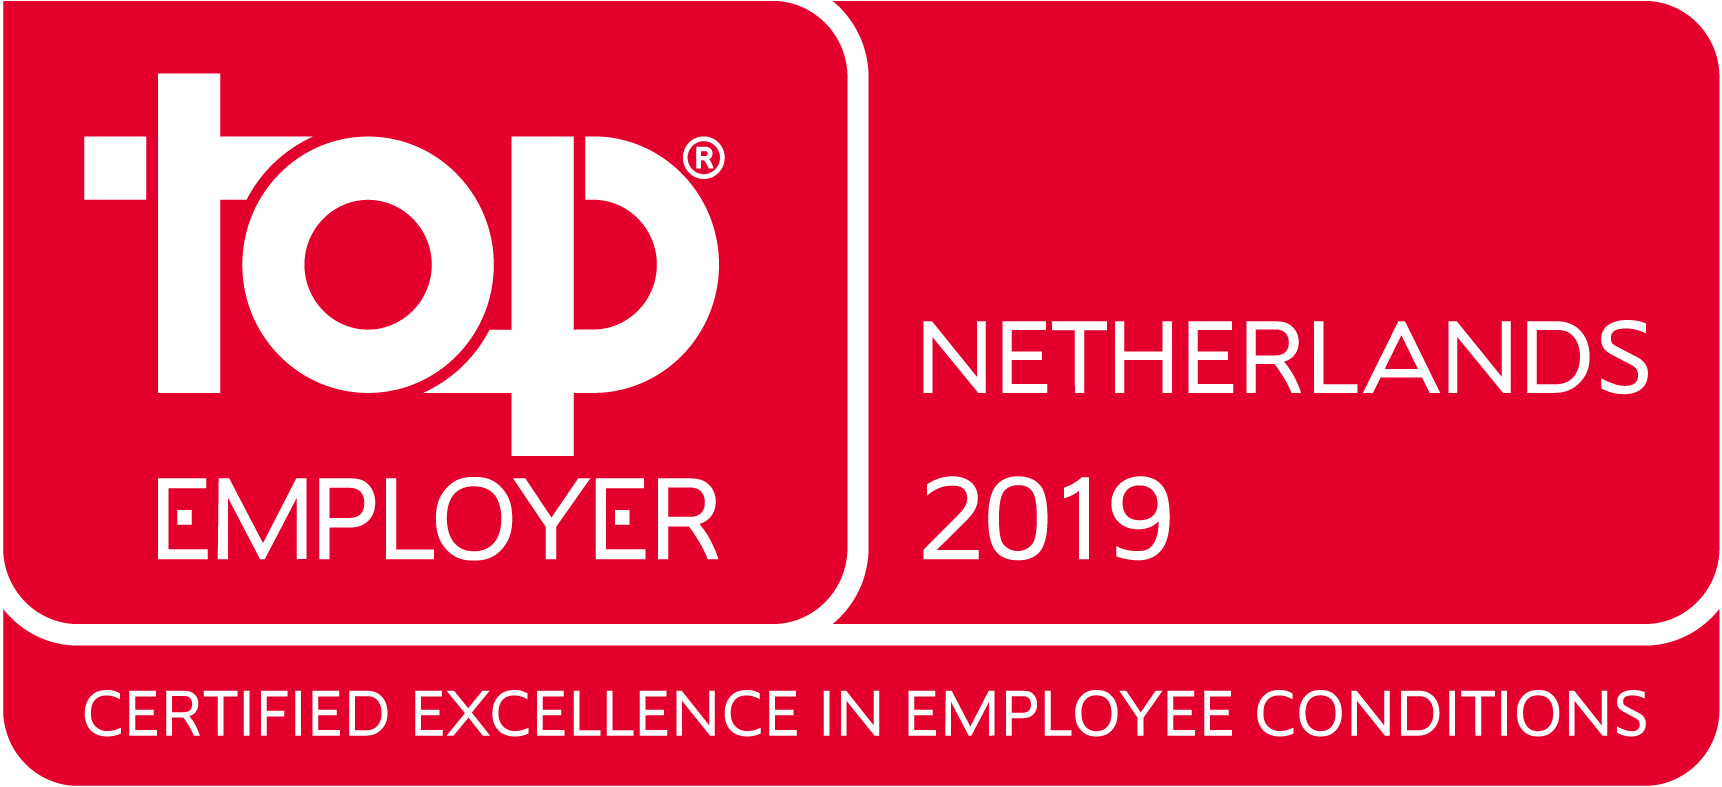 Top_Employer_Netherlands_English_2019